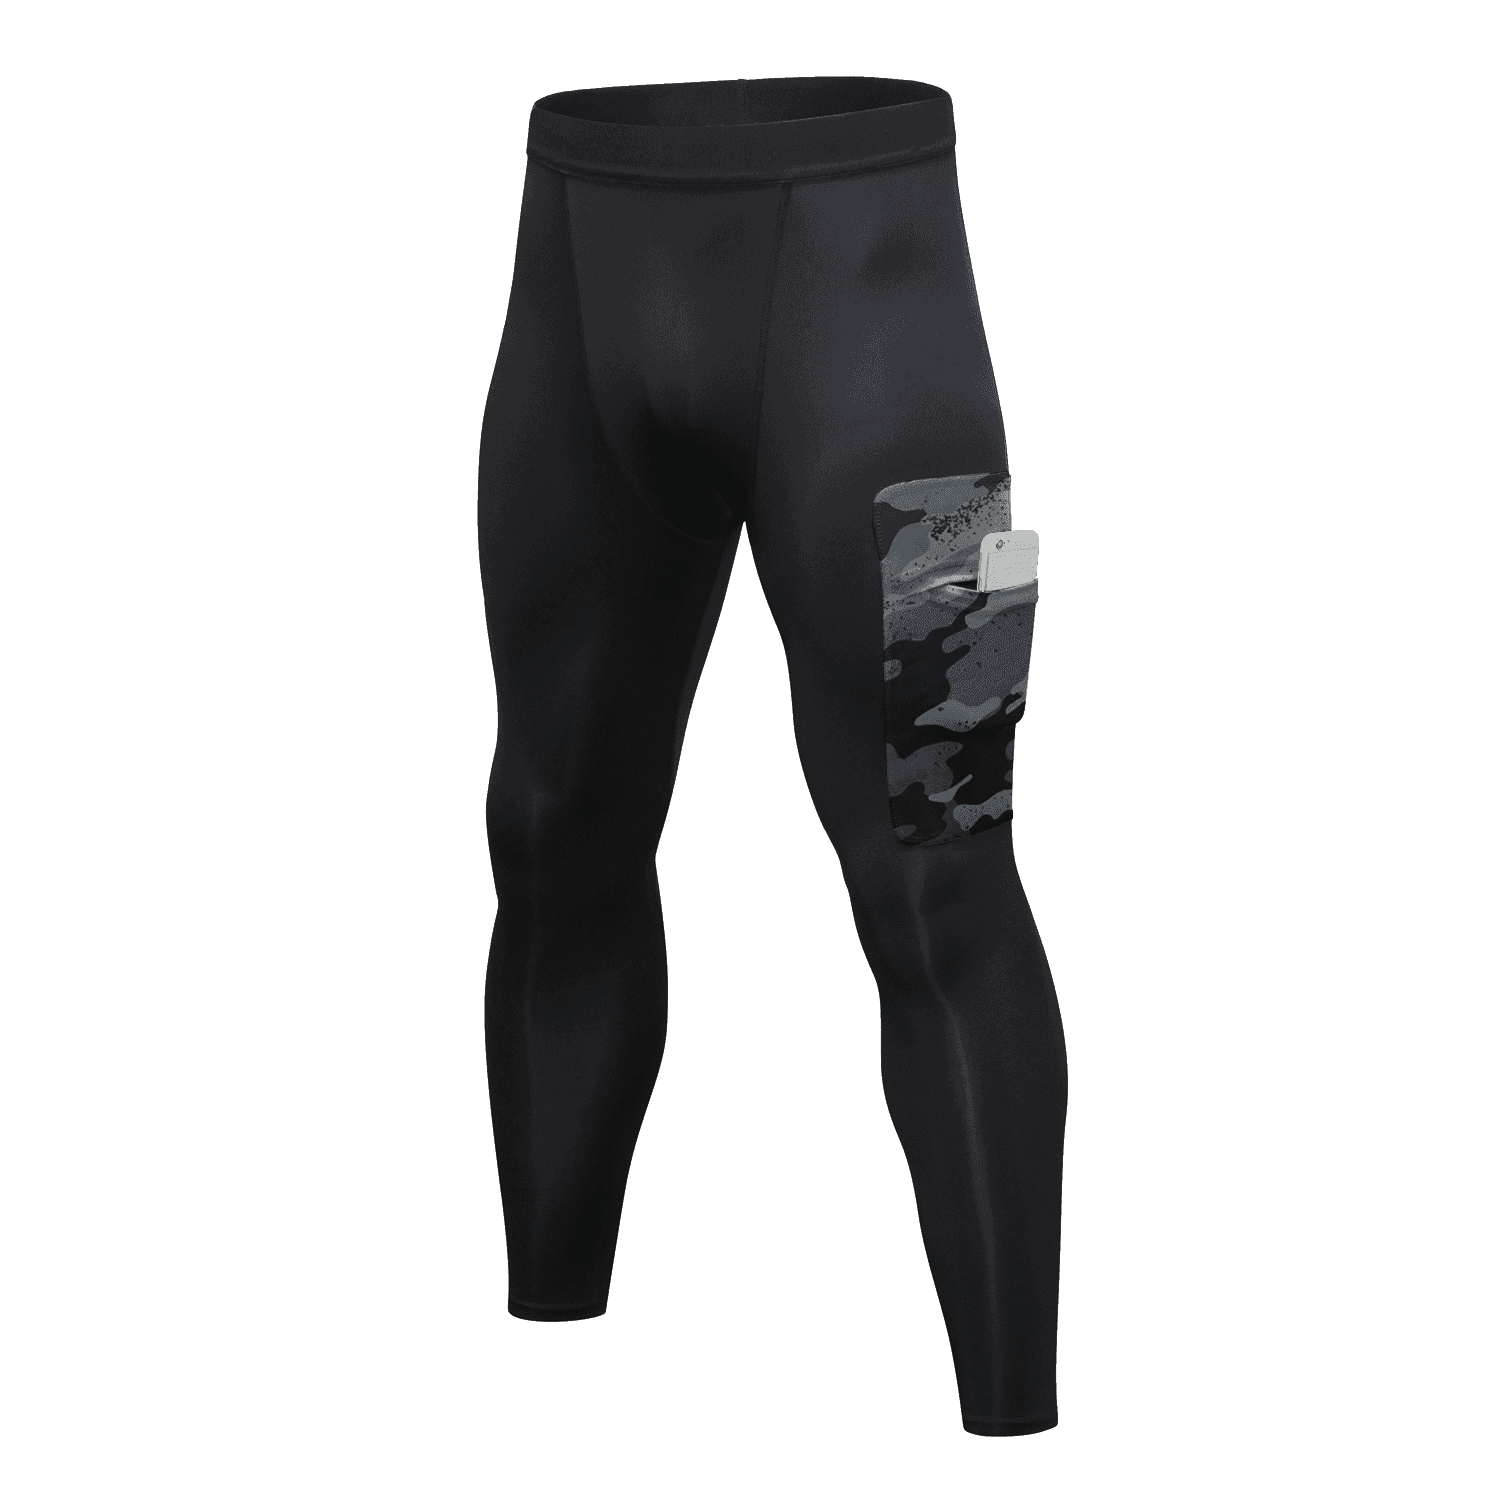 Man Sports Wear Leggins Compression Tights Running Leggings Elastic Band Compression Pants Men Tights with Camouflage Pocket